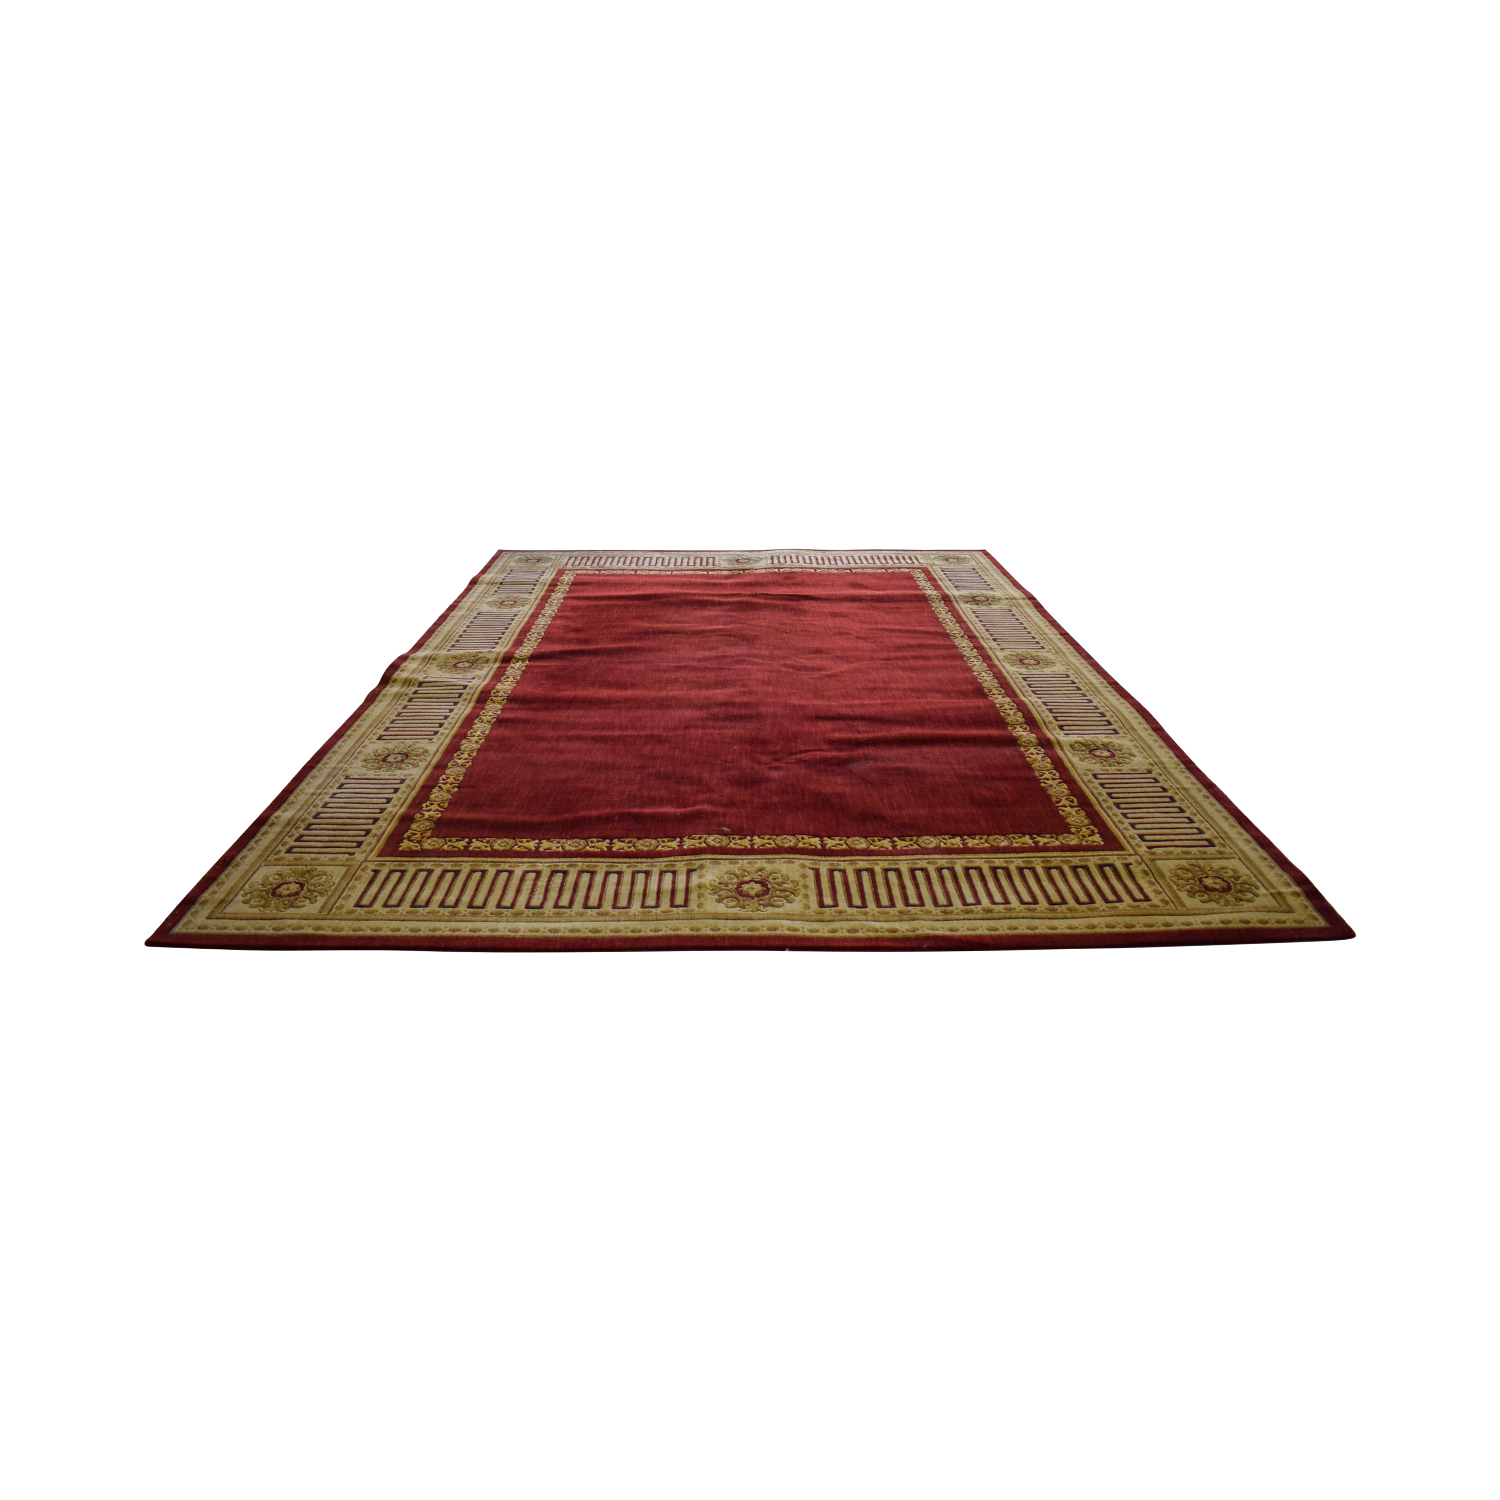 Bloomingdales Bloomingdales Red and Gold Wool Rug